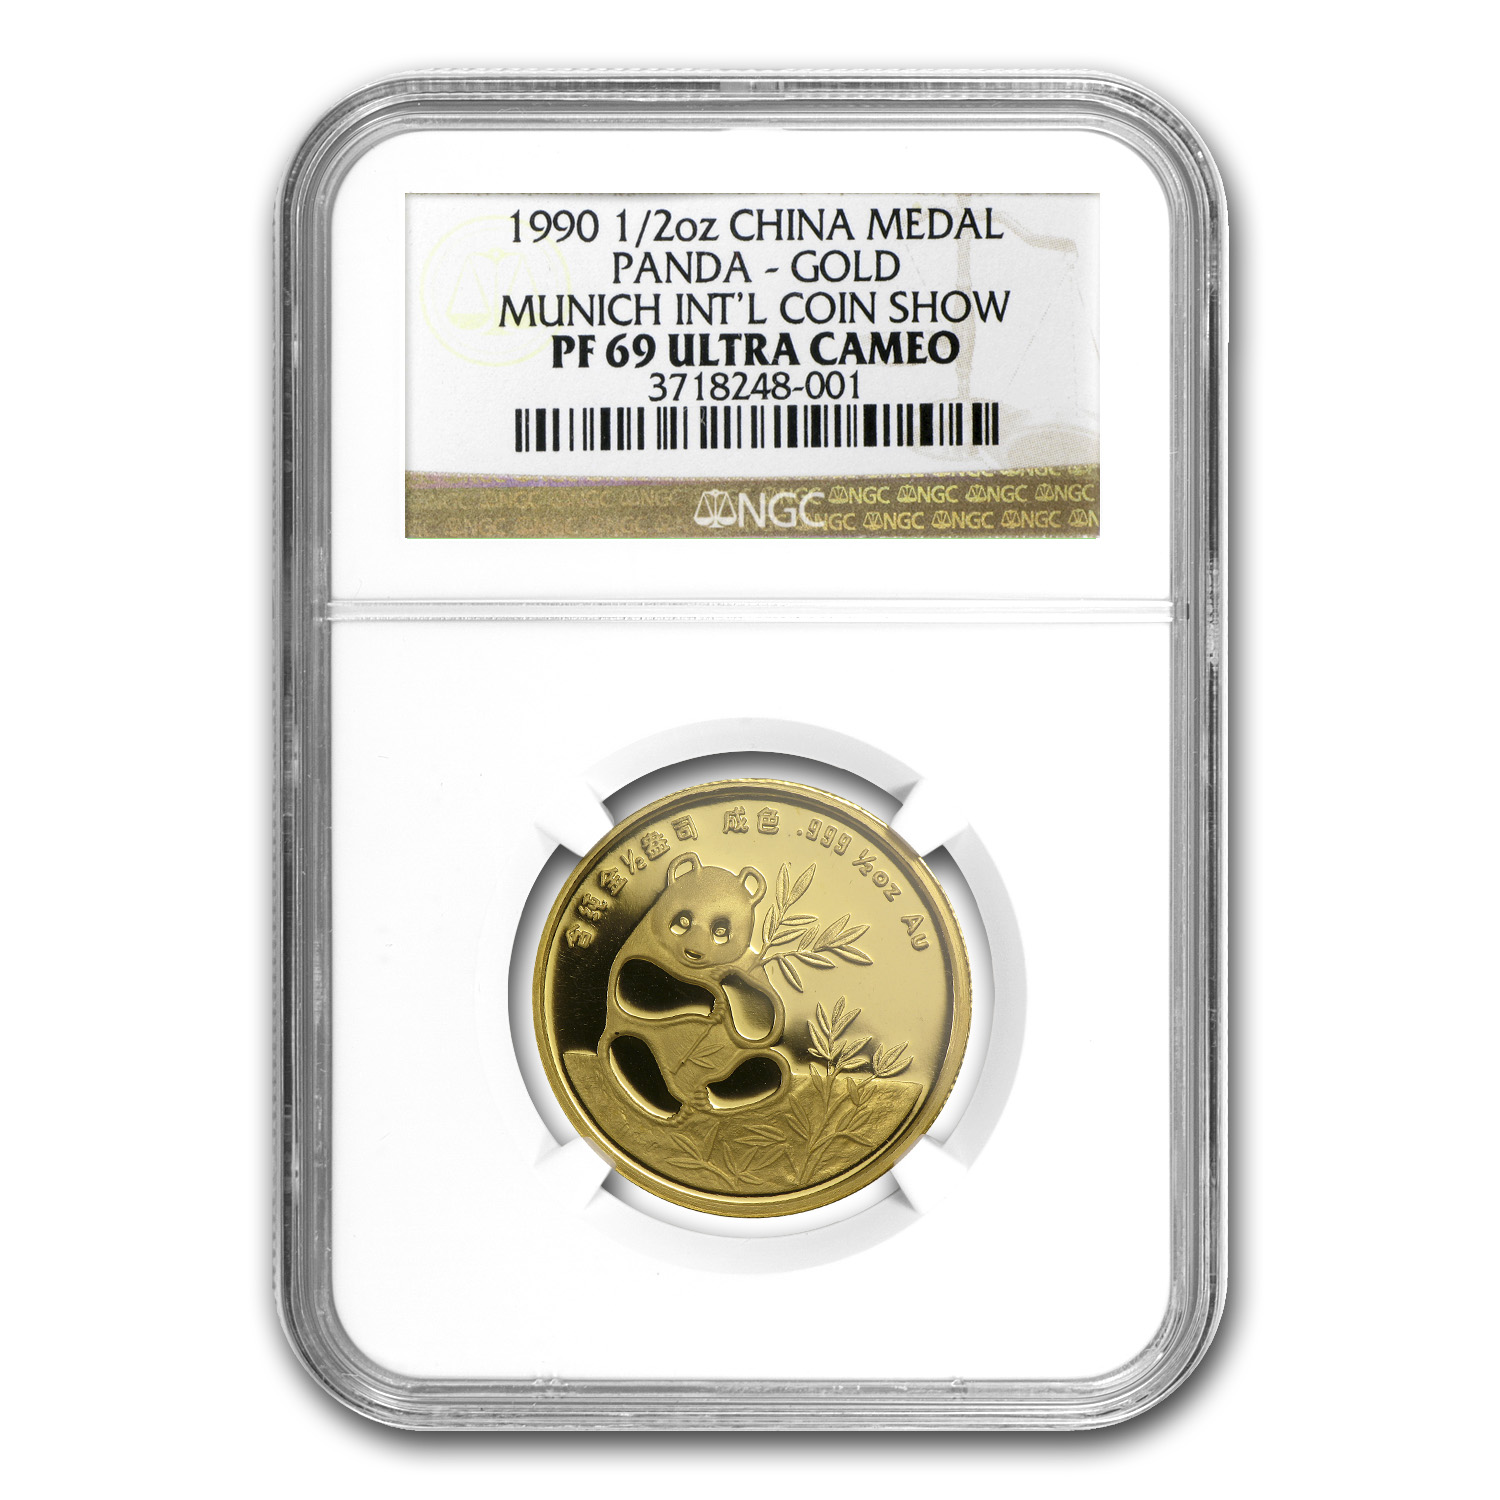 1990 1/2 oz Gold Chinese Panda PF-69 NGC (Munich Coin Fair Medal)